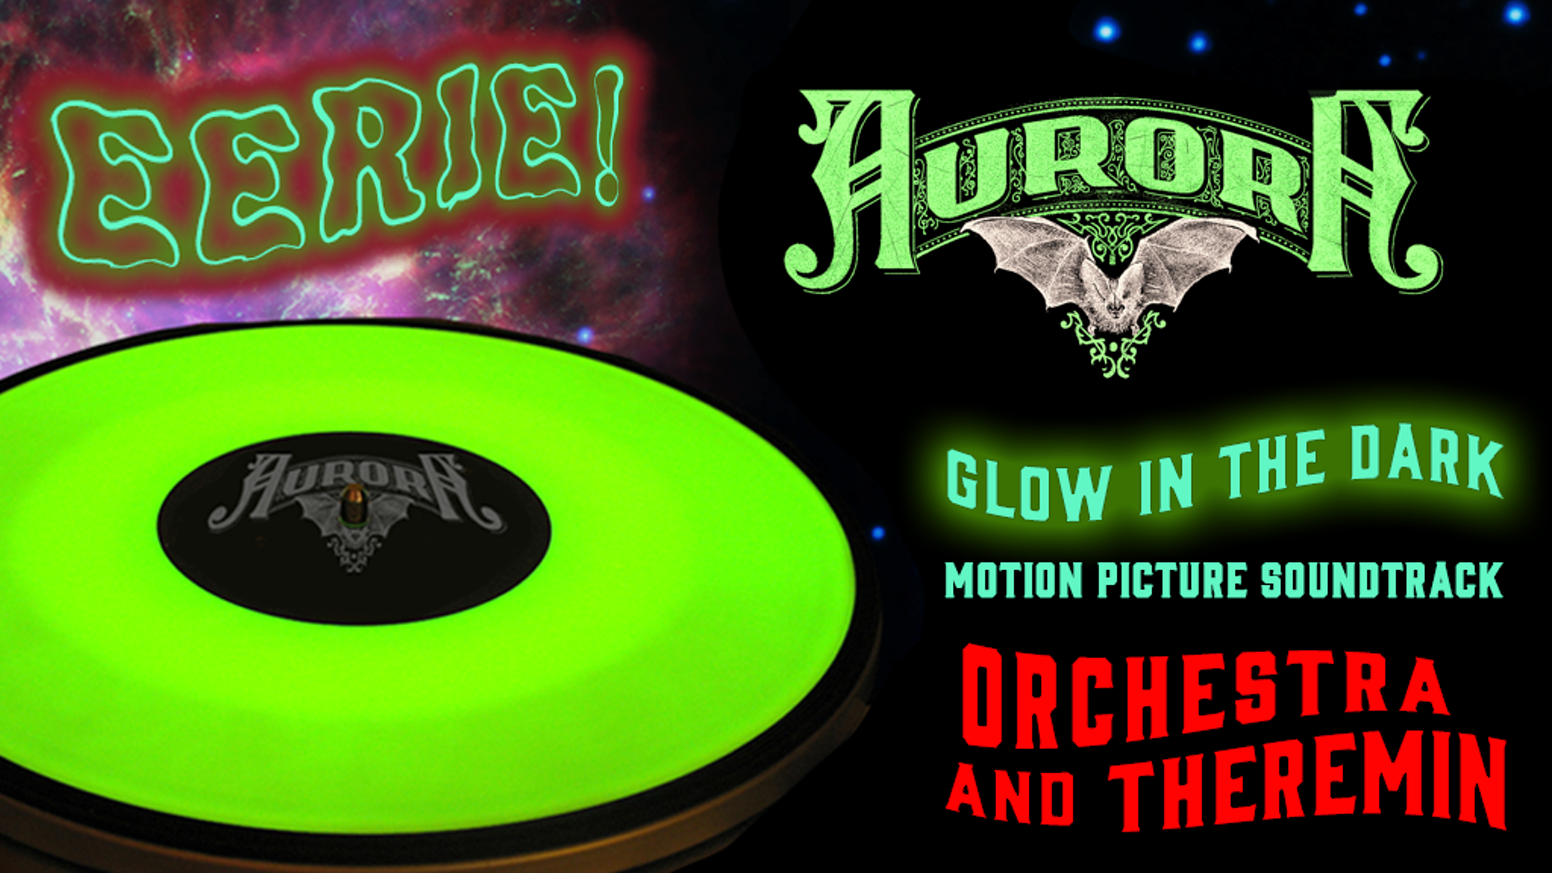 AURORA glowing Vinyl + Wax Cylinder: orchestra and theremin! by